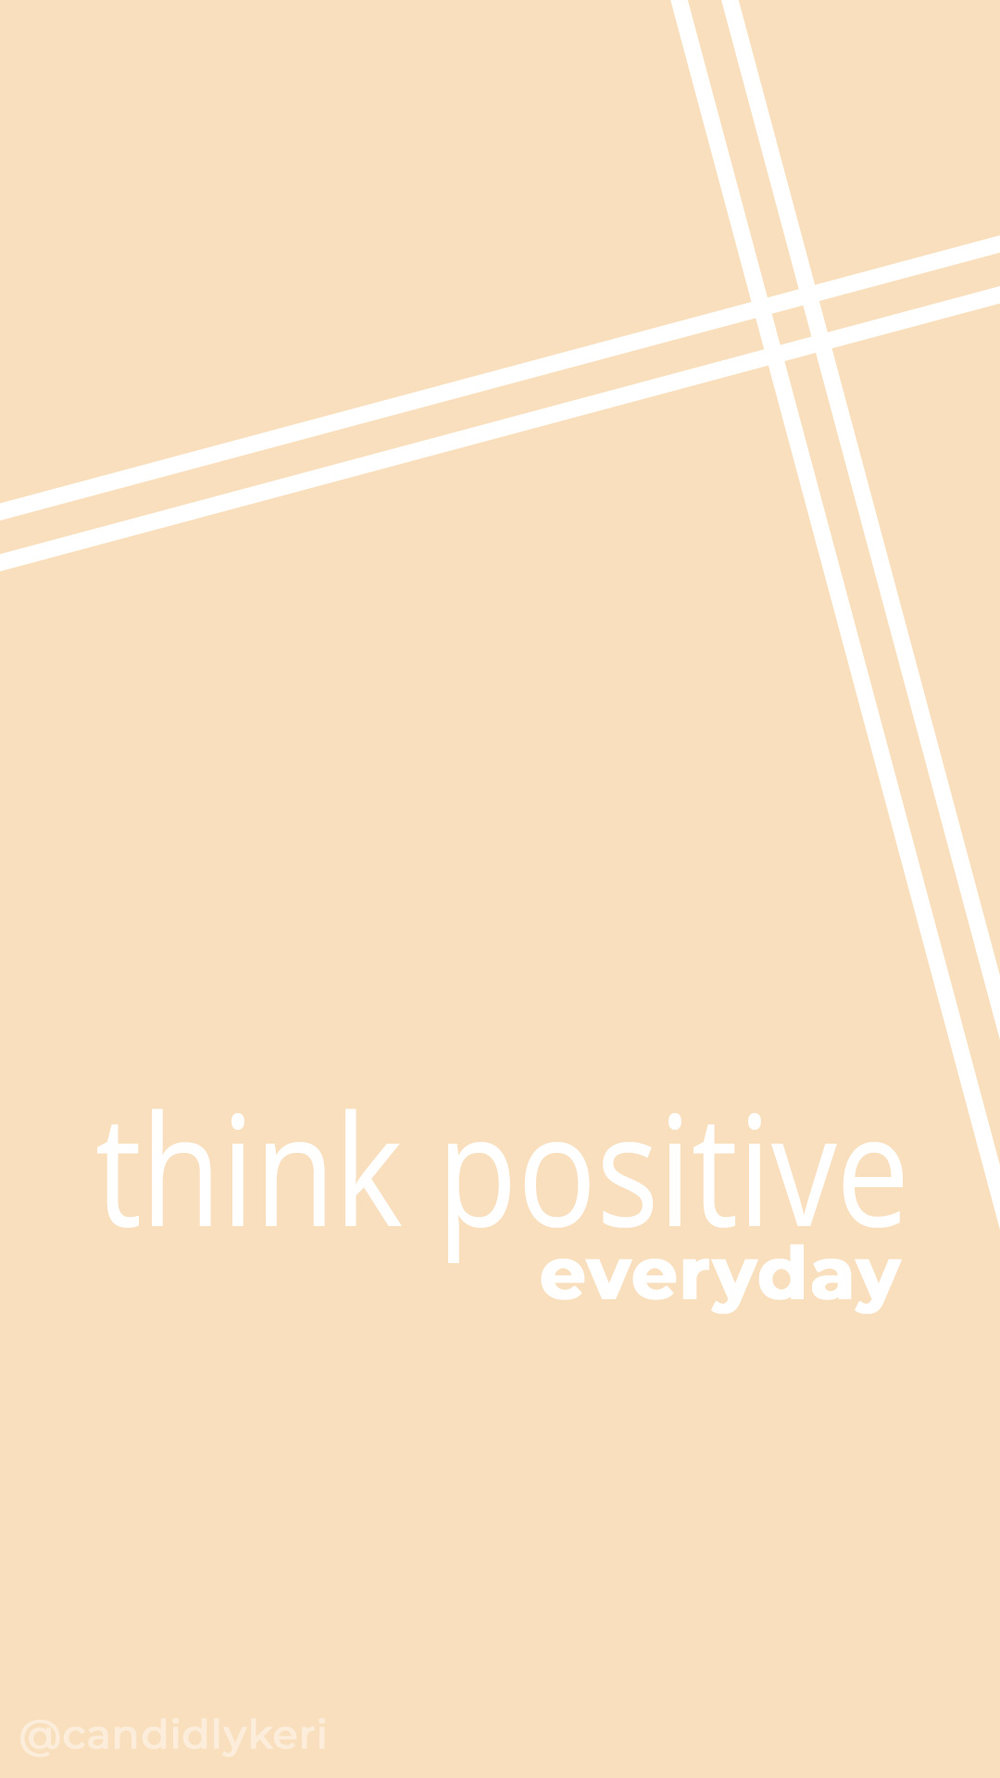 think positive everyday